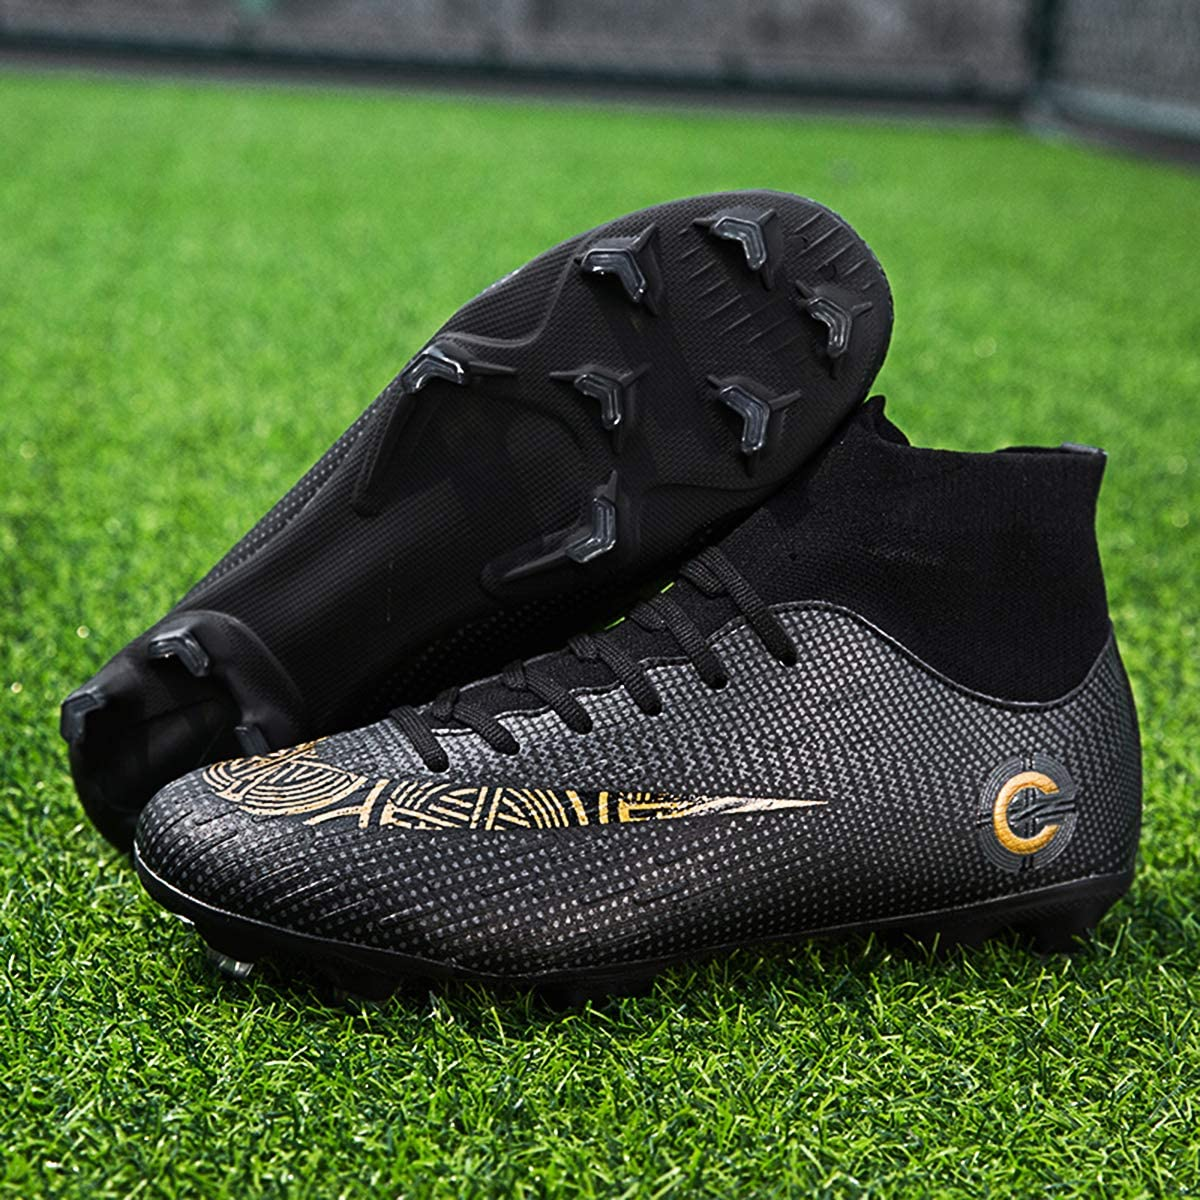 WRY Mens Football Boots Cleats Professional Spikes Soccer Shoes Competition//Training Boys Sneakers